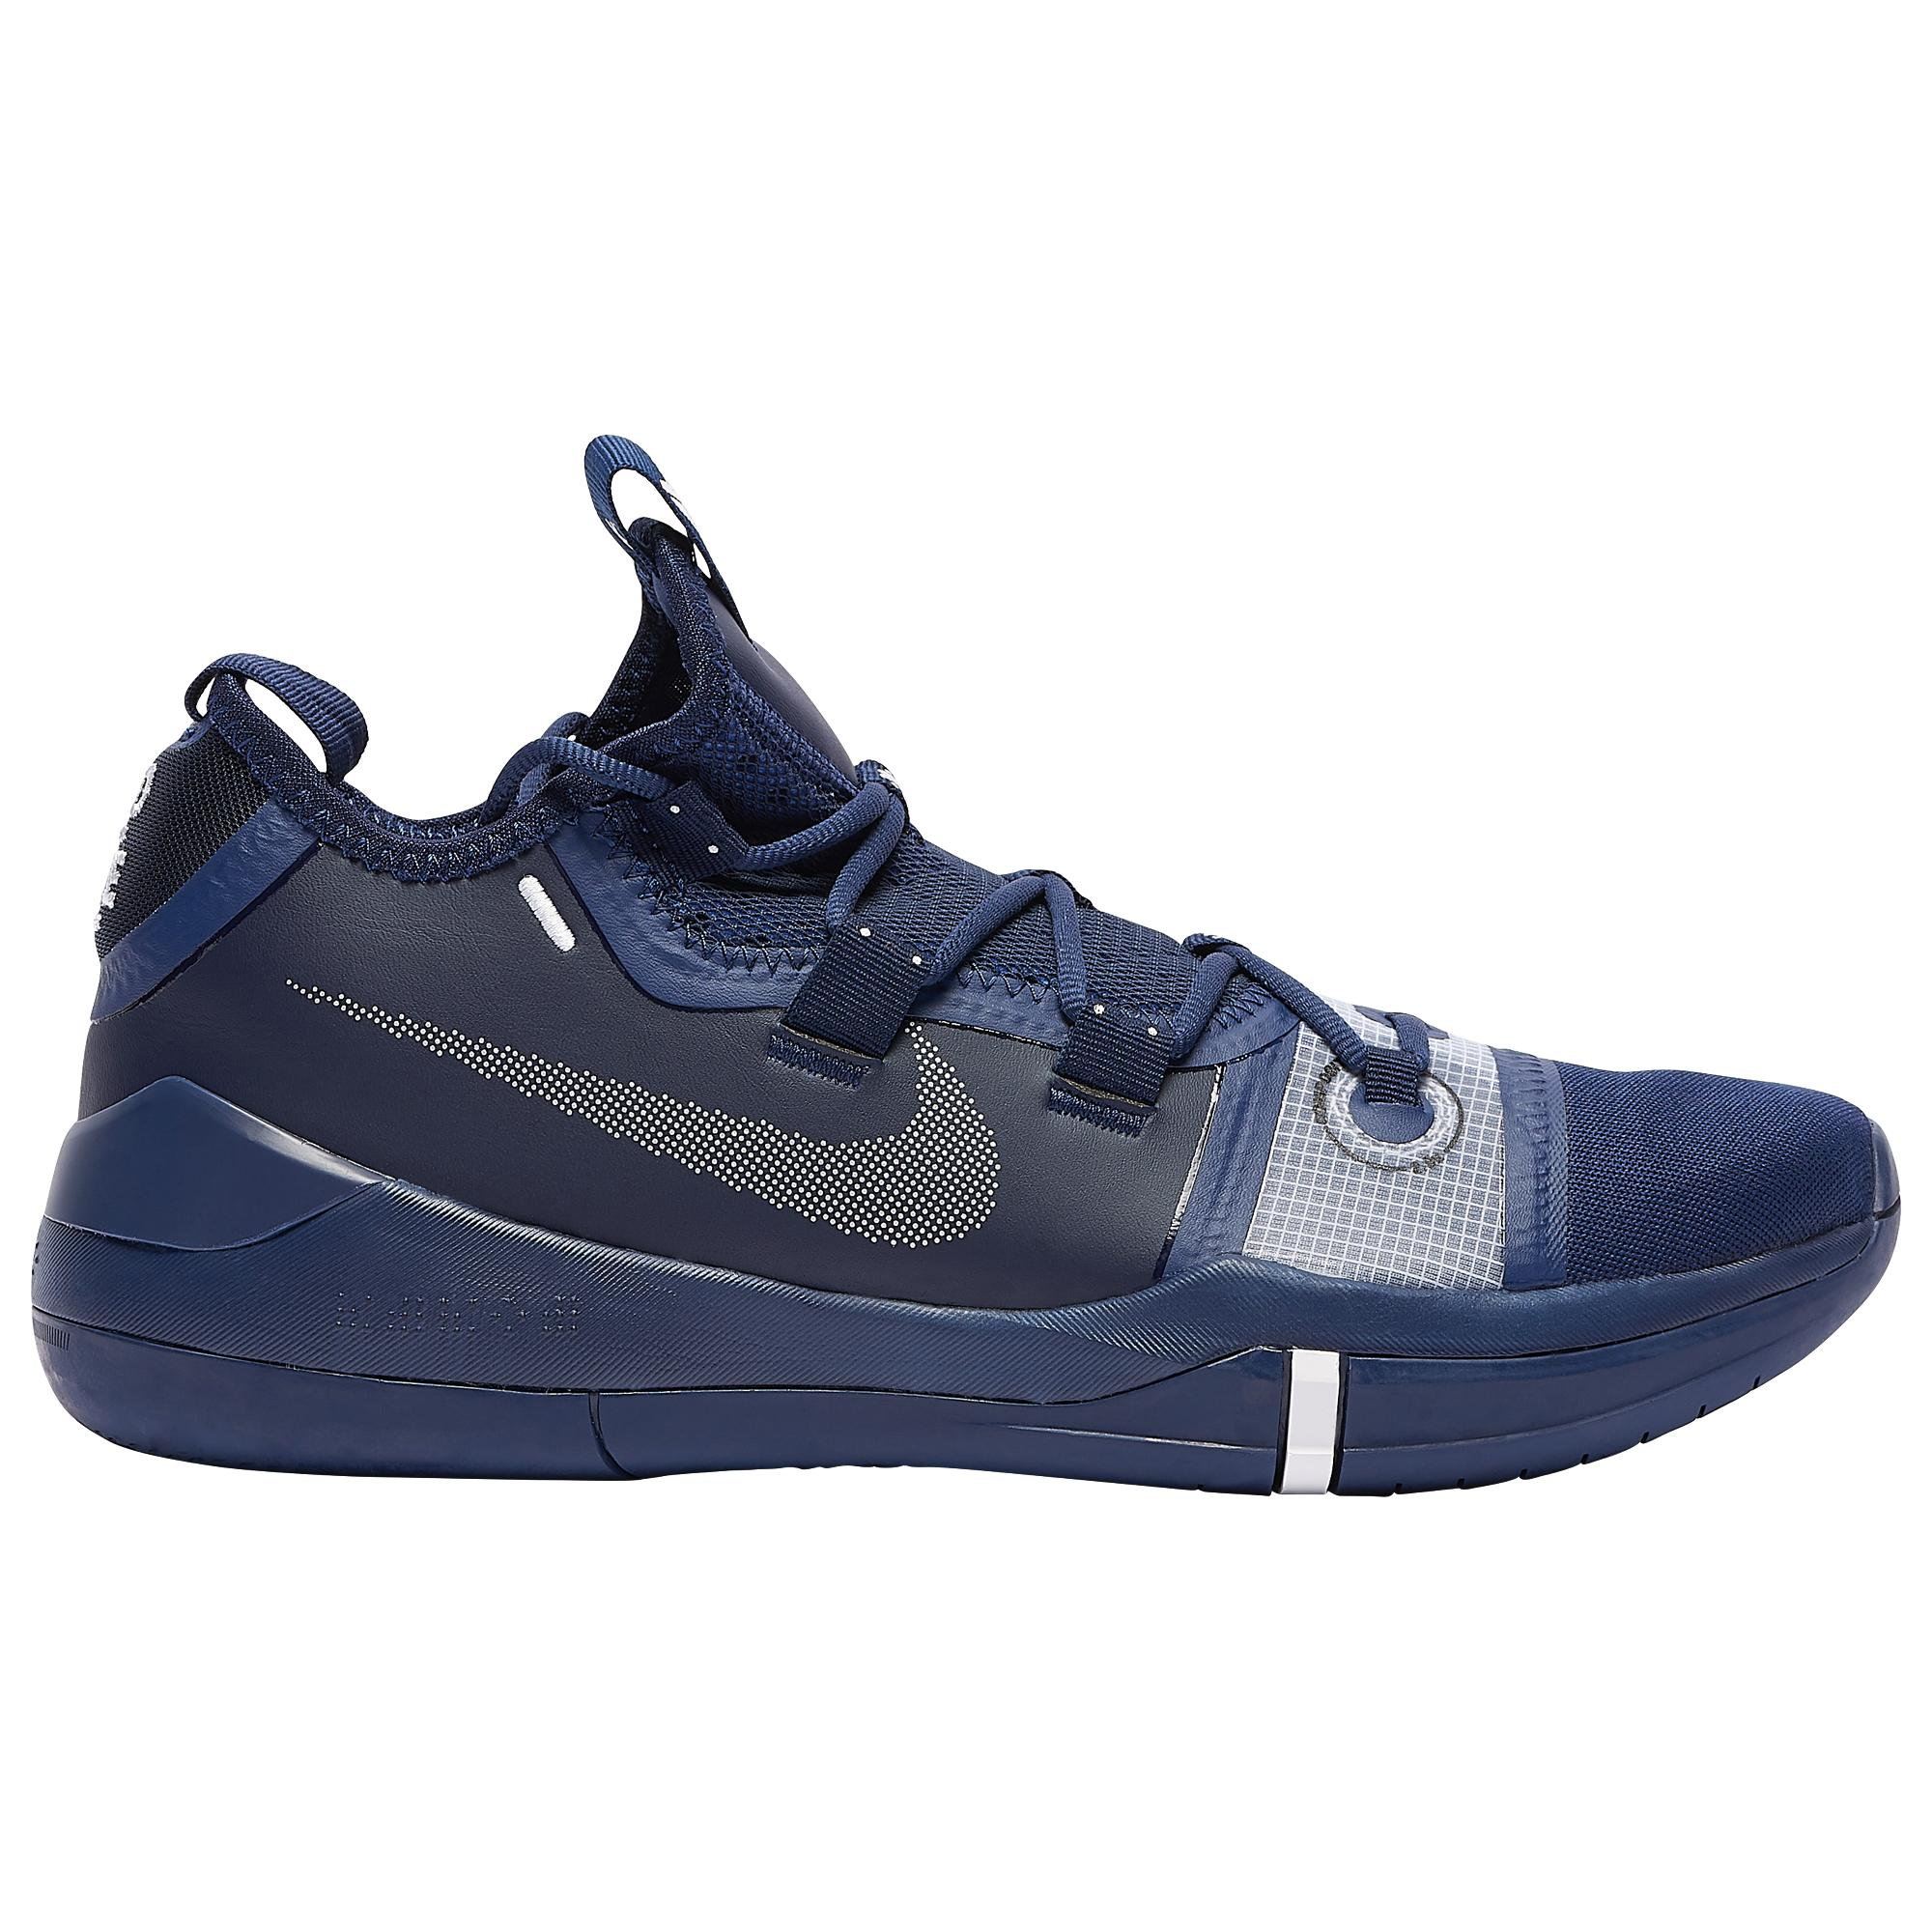 Nike Rubber Kobe Ad Basketball Shoes in